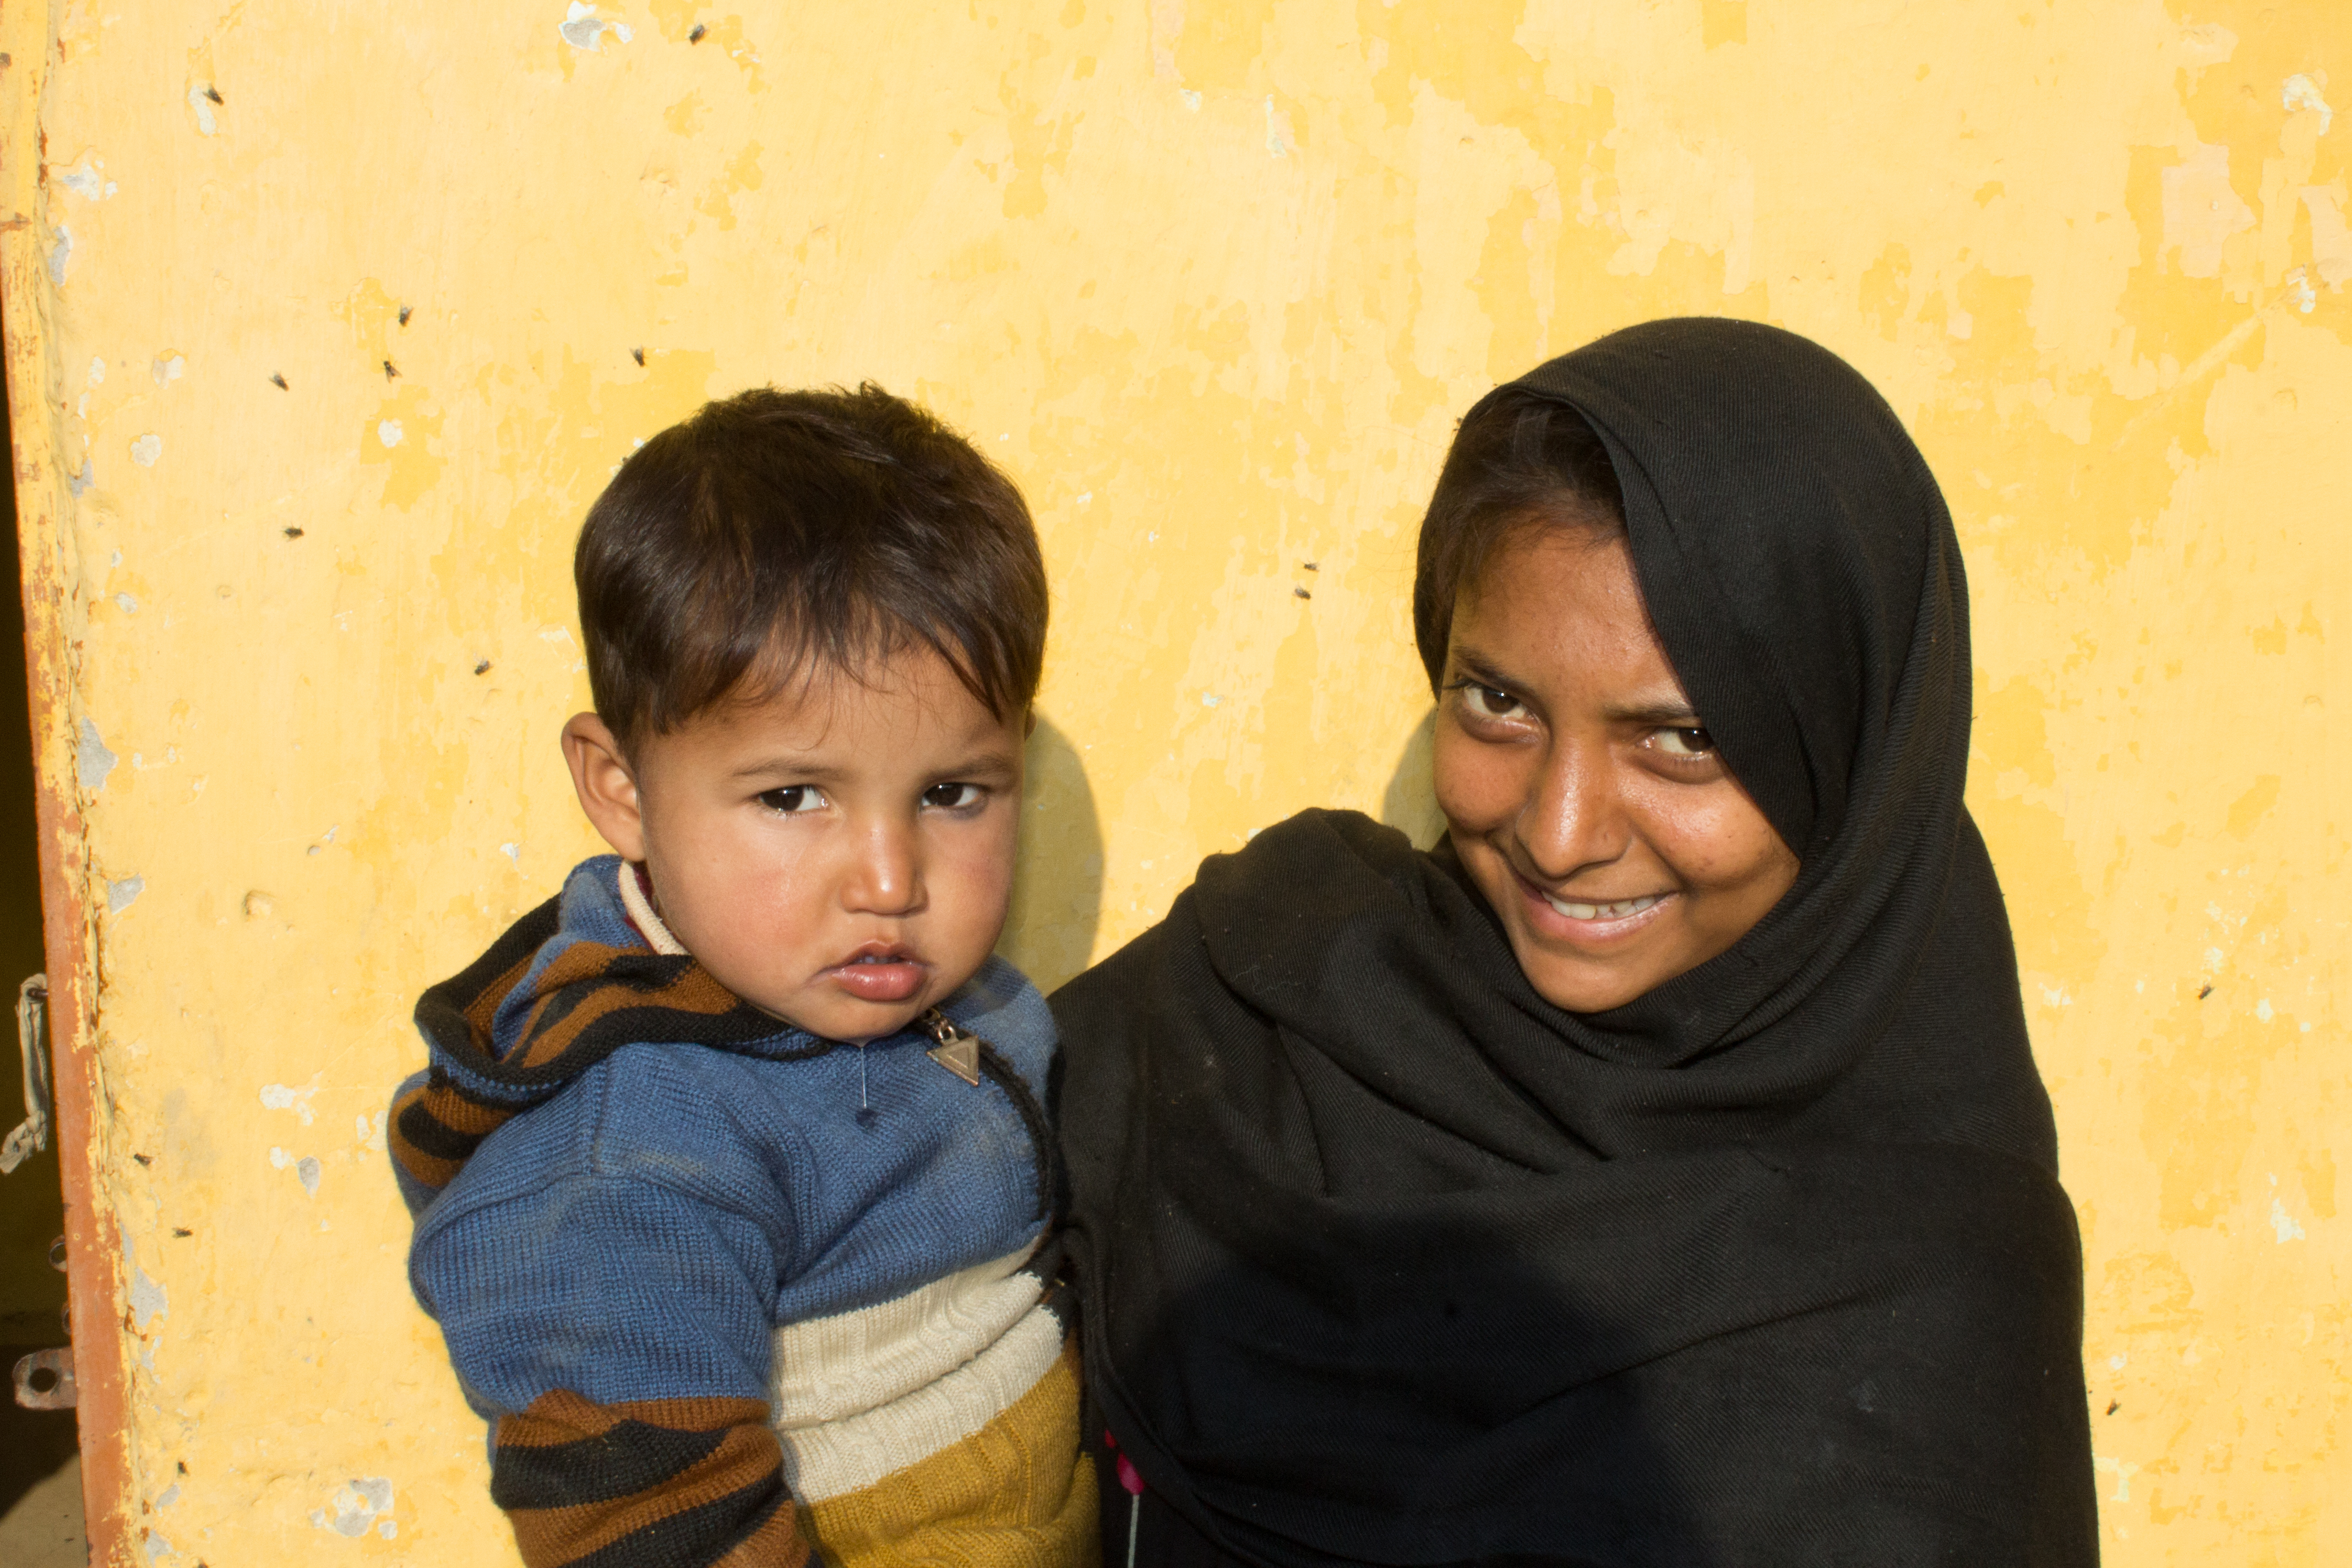 One of the women supported by our project in Pakistan. Photo by Katie Luxton.